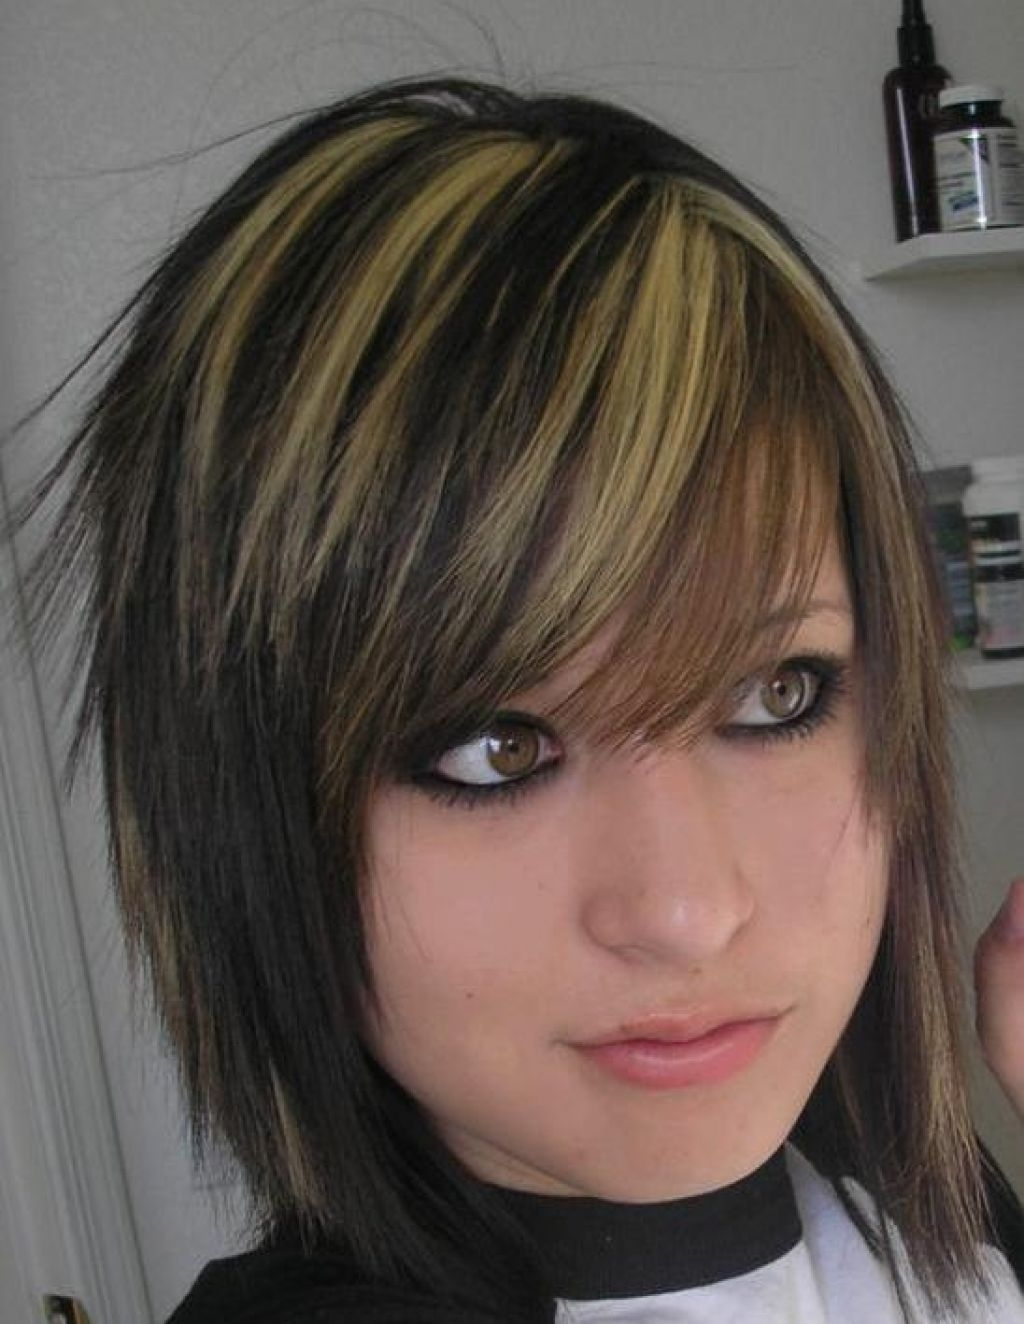 2018 Shaggy Emo Haircuts Regarding Hairstyles For Girls With Medium Hair  (View 3 of 15)